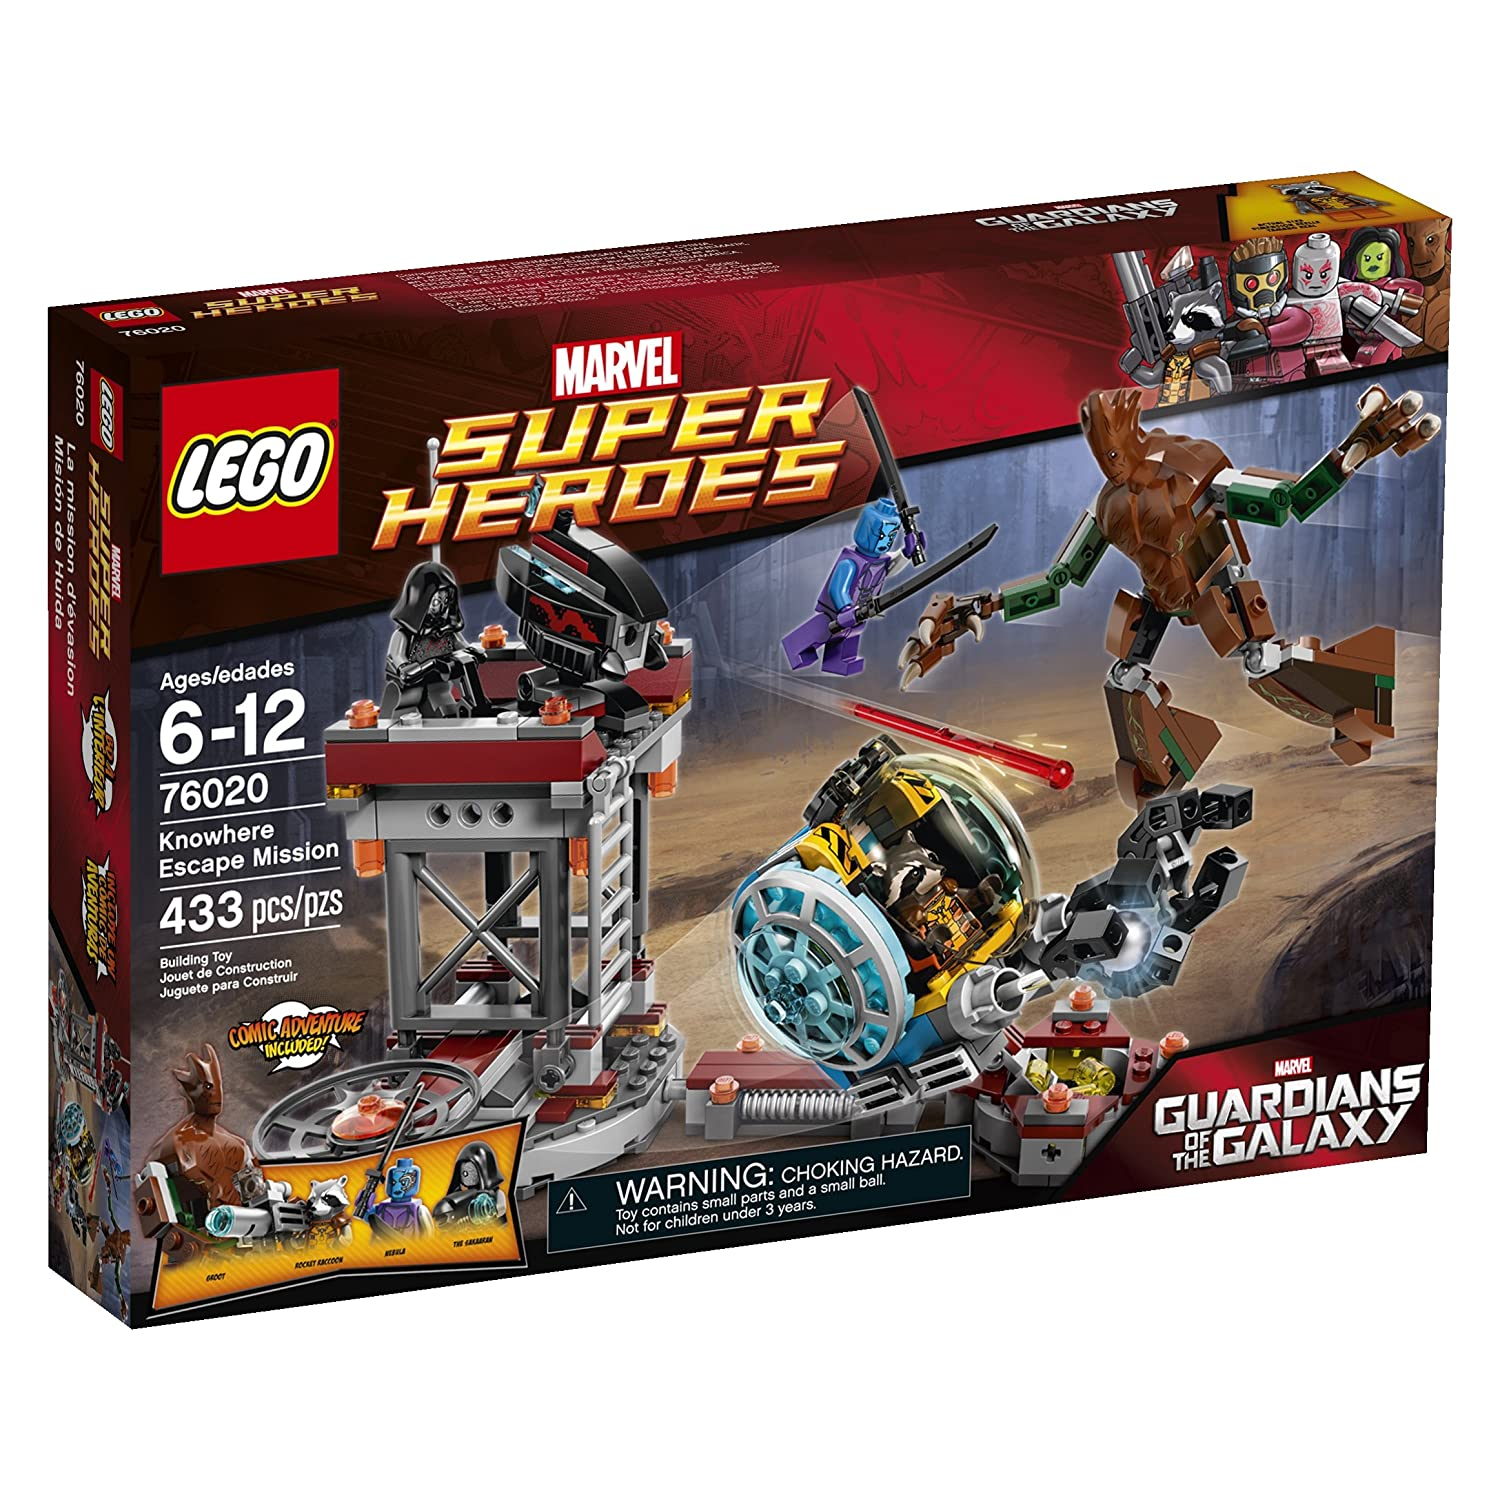 Top 7 Best LEGO Guardians of the Galaxy Sets Reviews in 2019 4